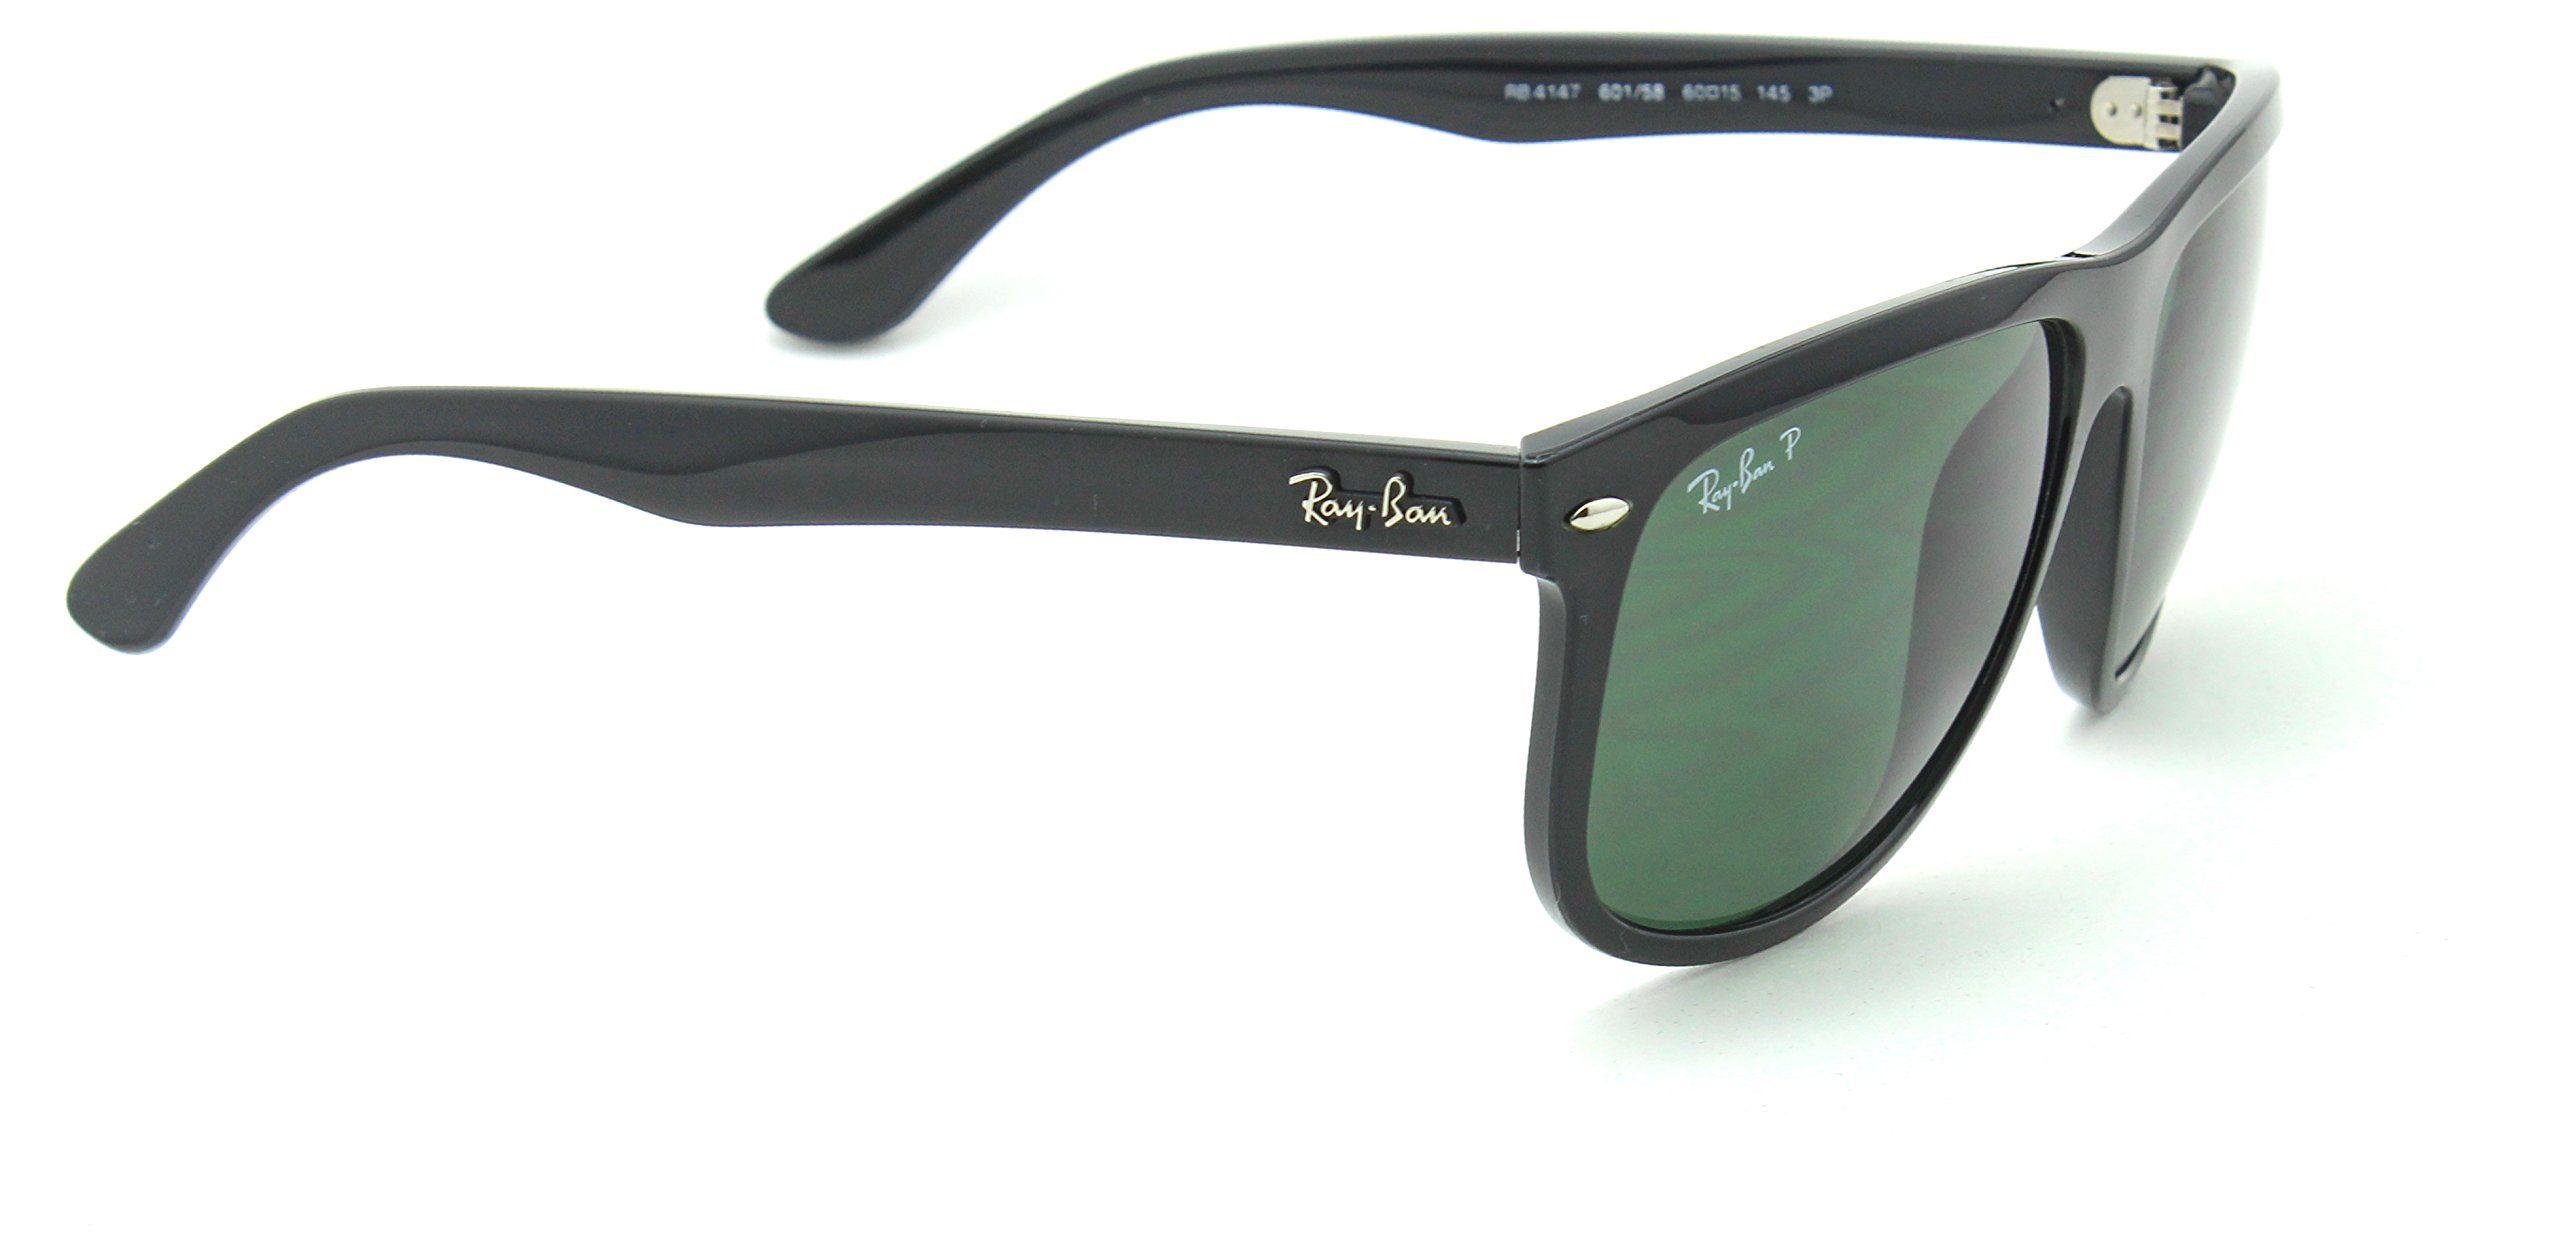 5d6bb66b77 RayBan RB4147 Polarized Square Unisex Sunglasses Black 601 58 60mm   Visit  the image link